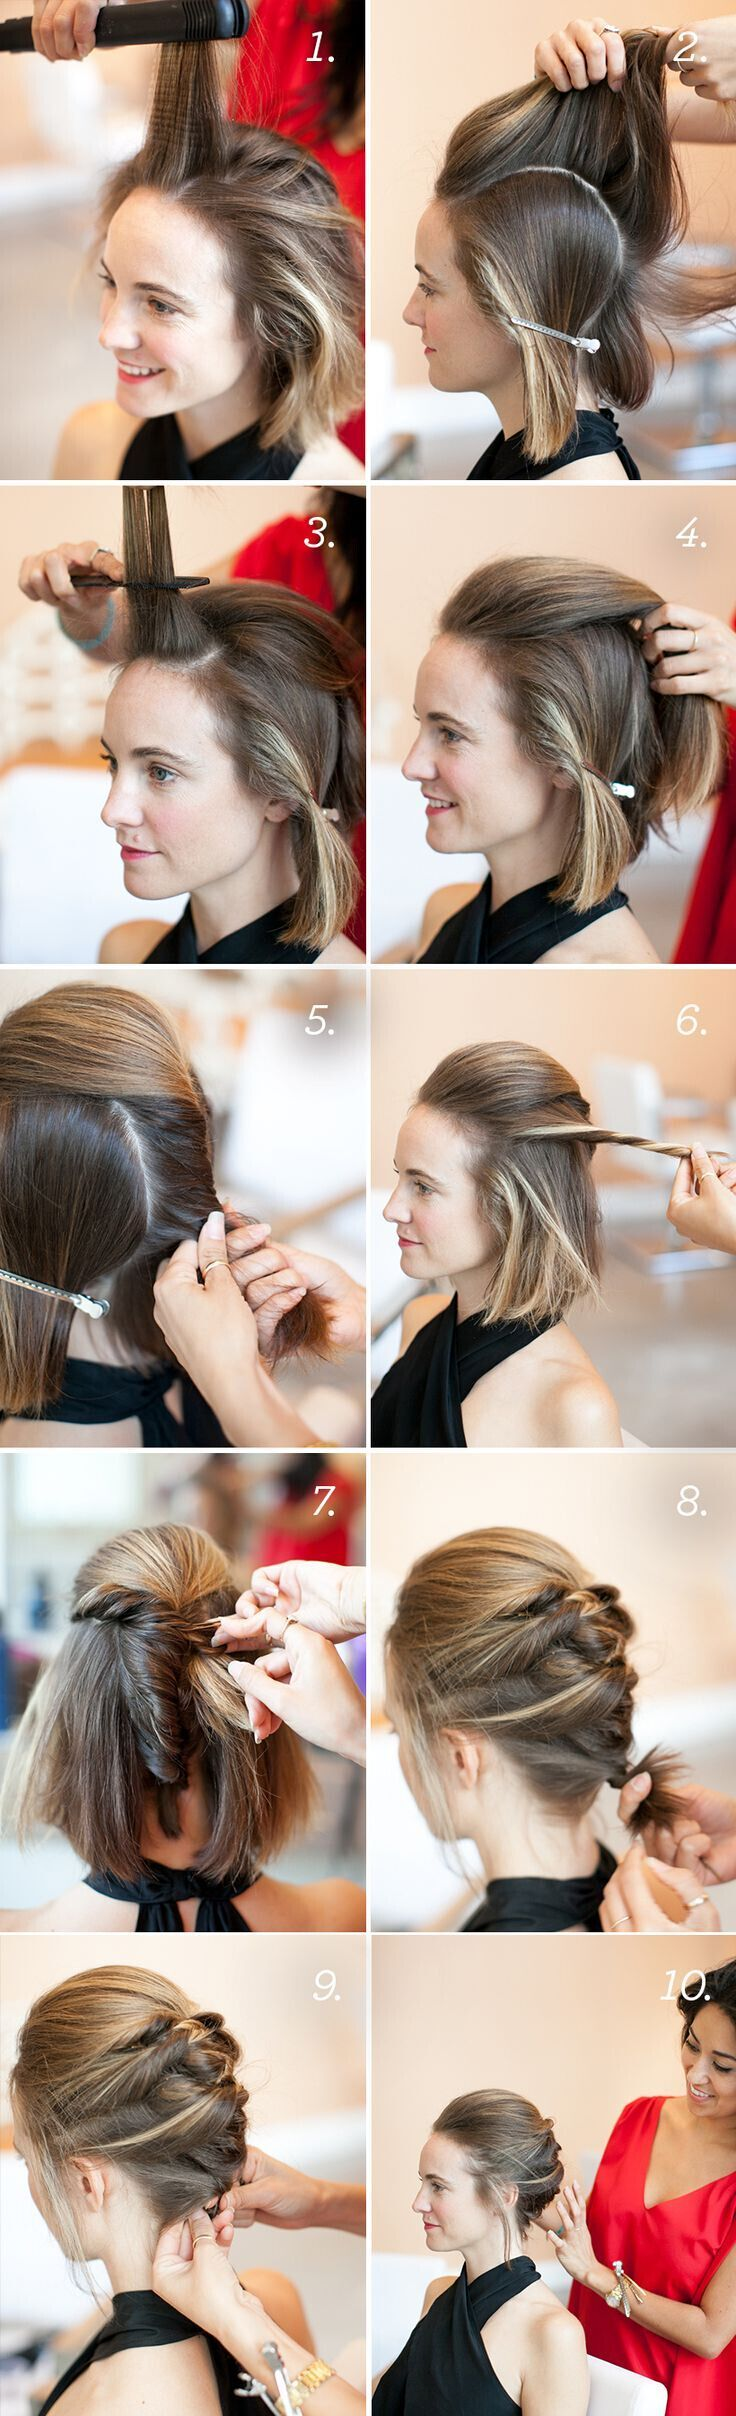 Textured French Twist Hairstyles: Cute Braid Updo for short hair